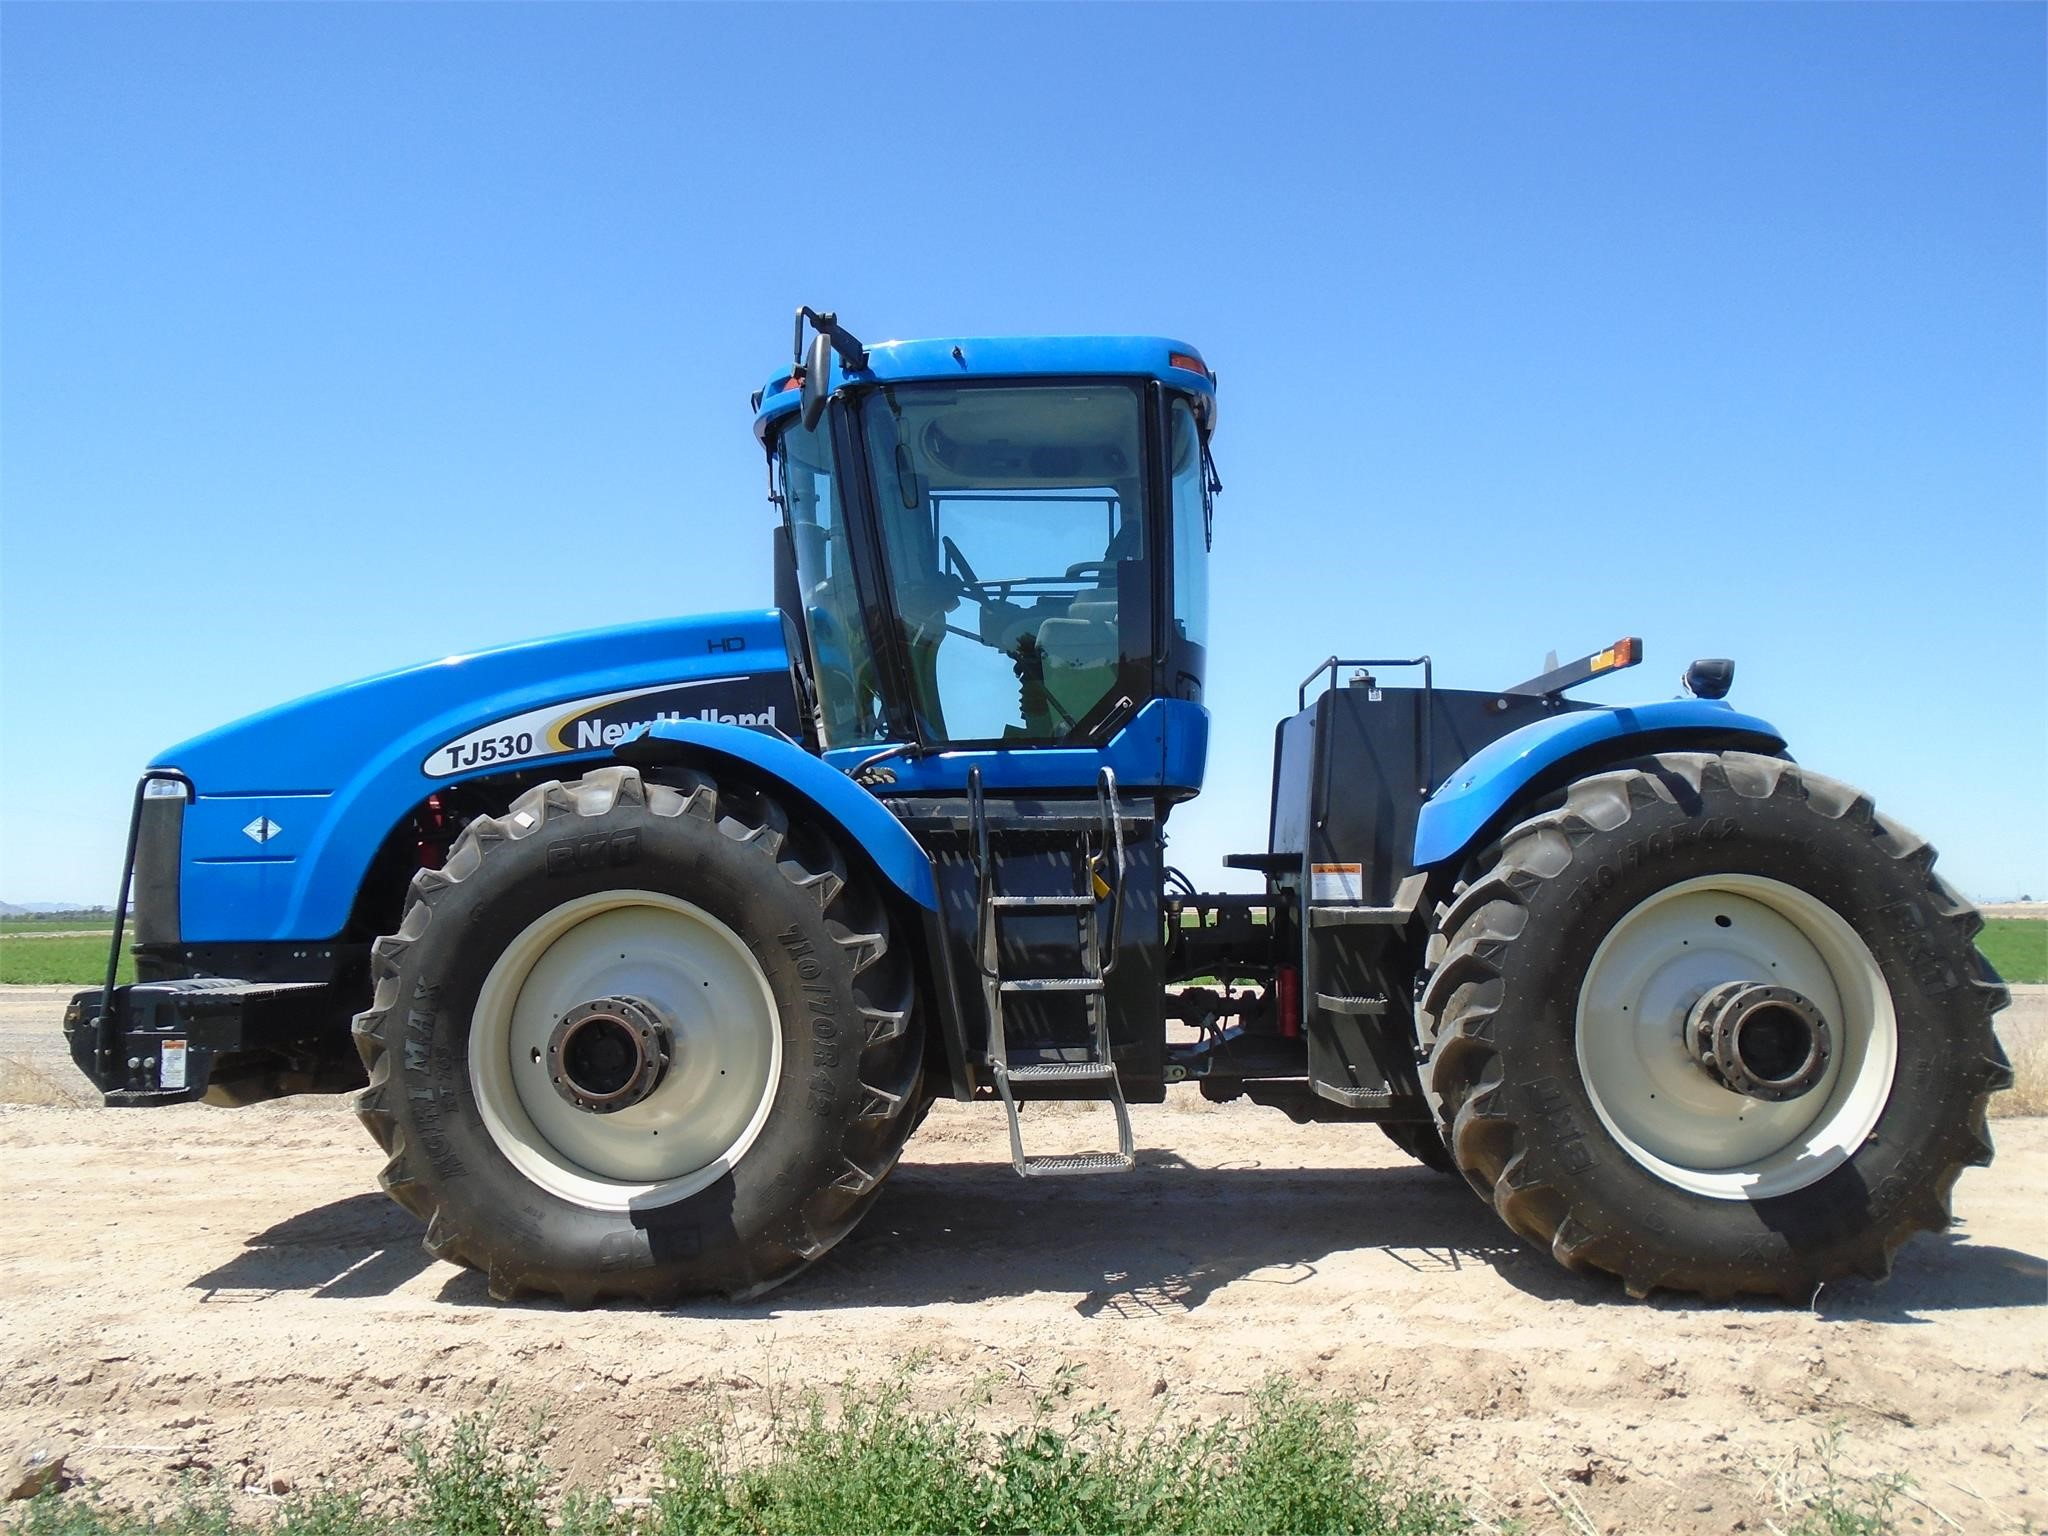 2007 New Holland TJ530 Tractor